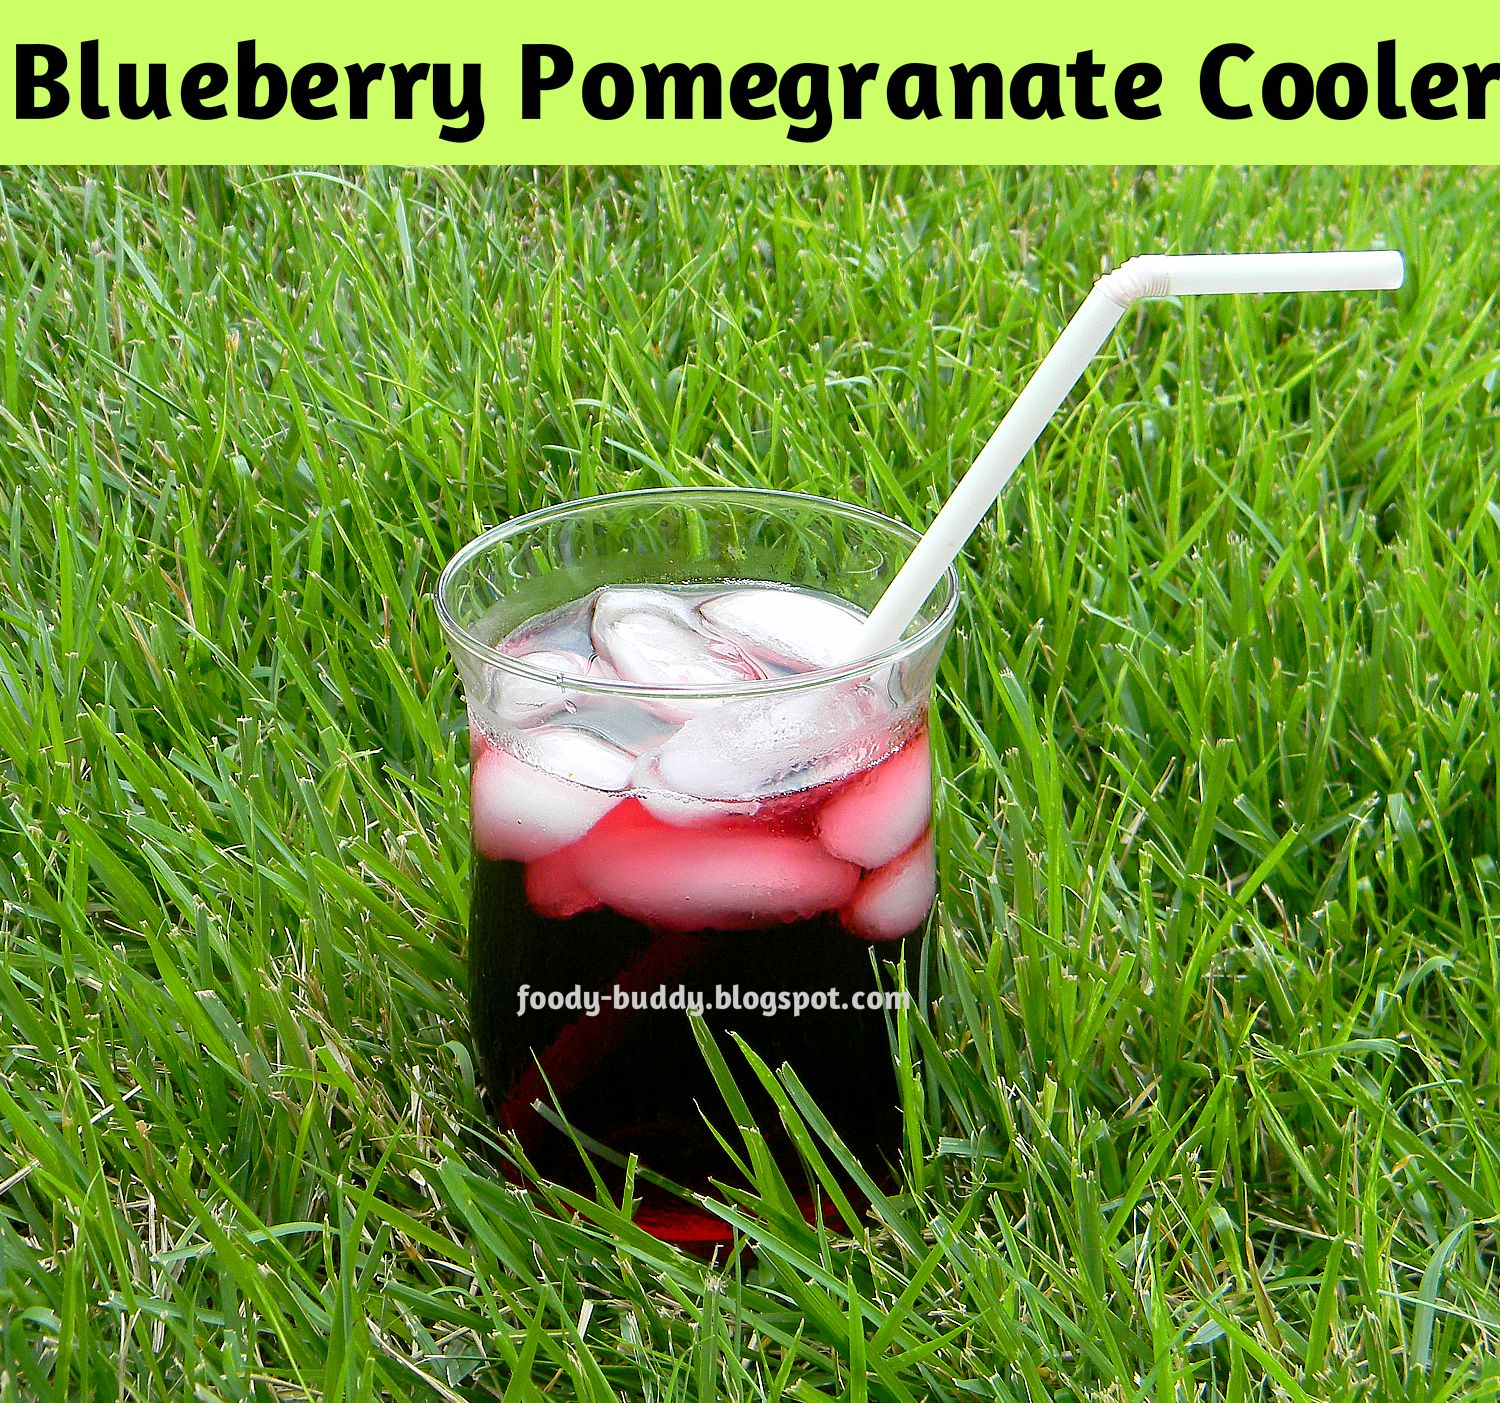 Foody - Buddy: Best Antioxidant Drink / Blueberry Pomegranate Cooler